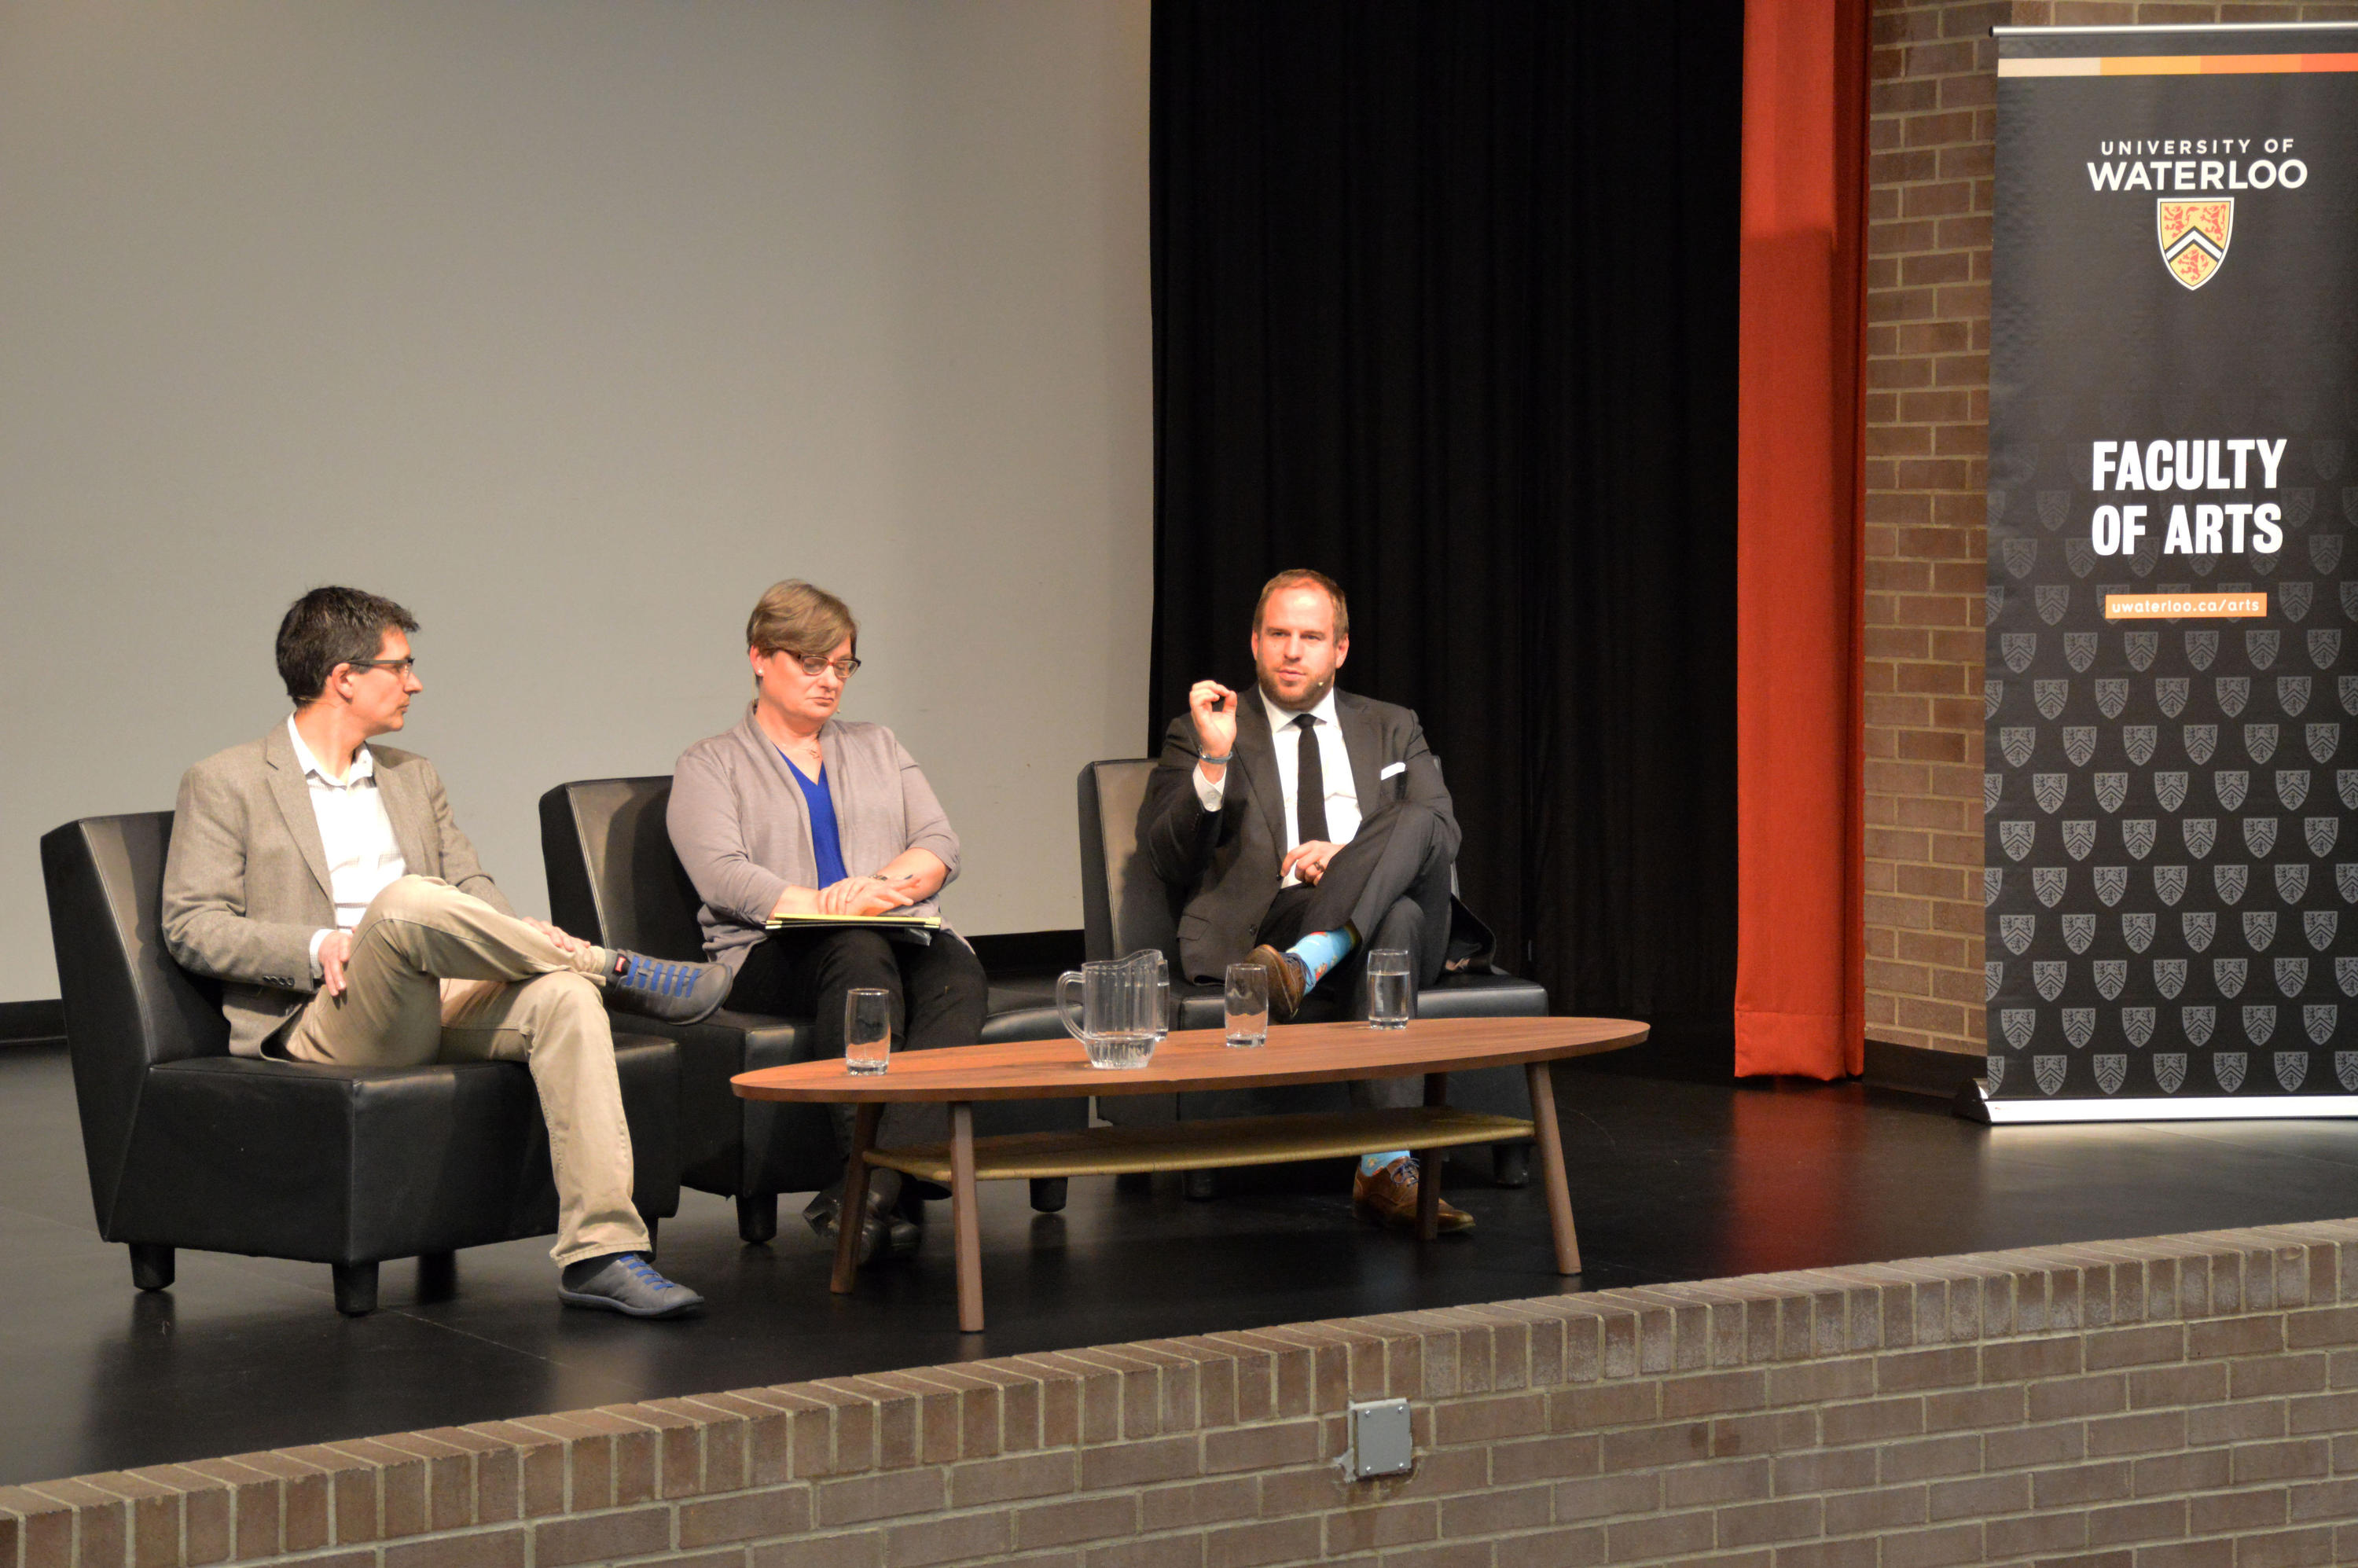 three professors in chairs on stage at event